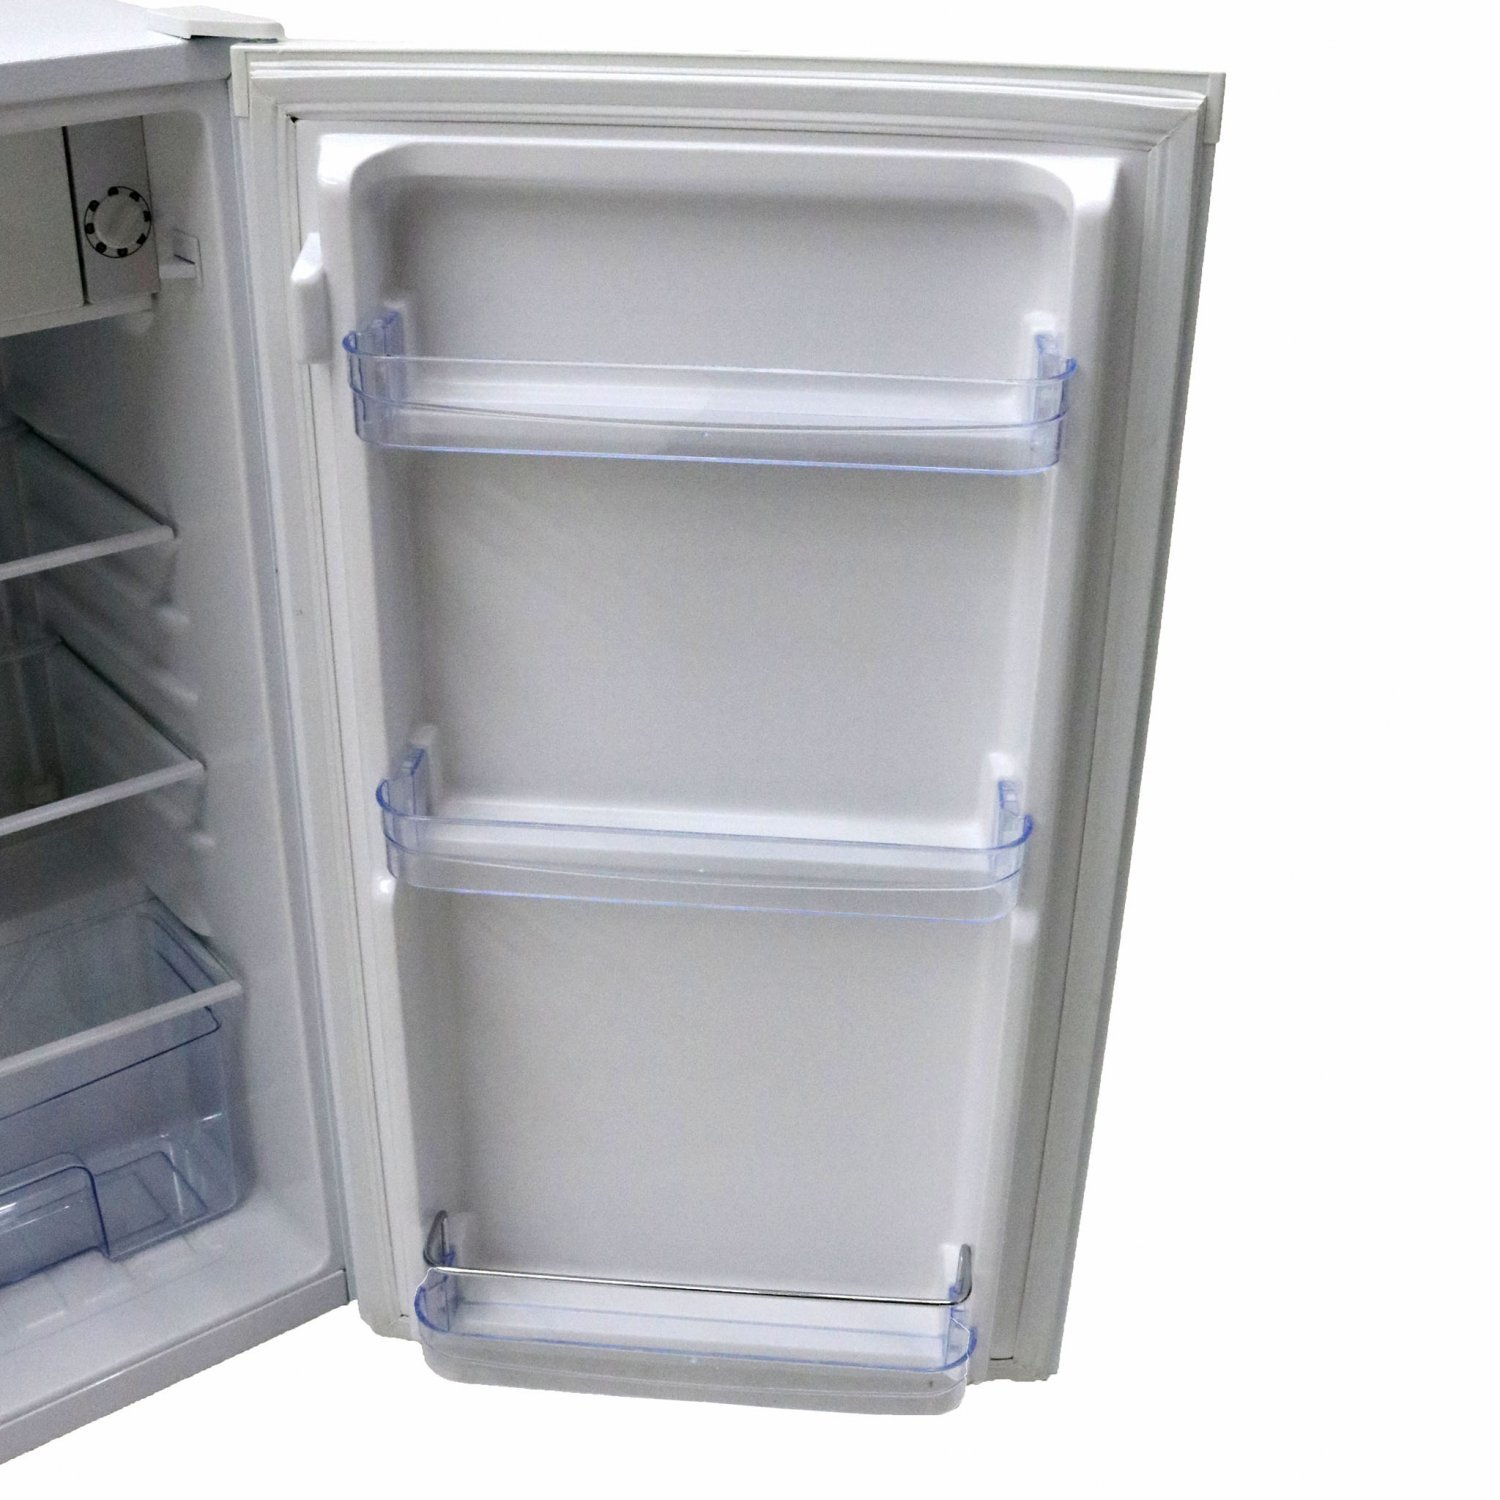 (RU1) The under counter 90L fridge offers a space saving compact design with all the top qualit... - Image 2 of 3